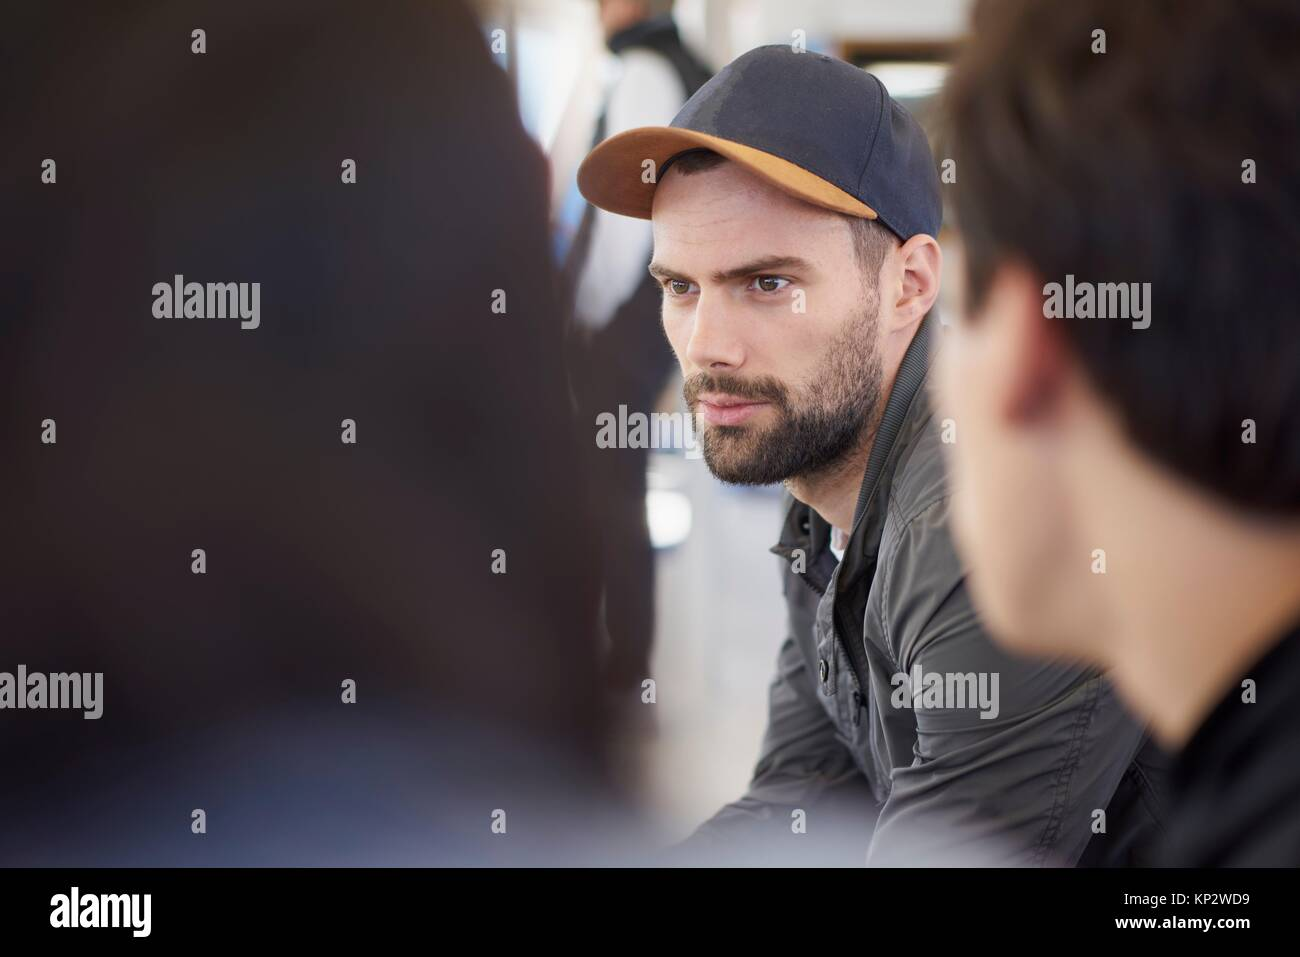 Thoughtful, distracted young man is daydreaming during conversation with friends - Stock Image